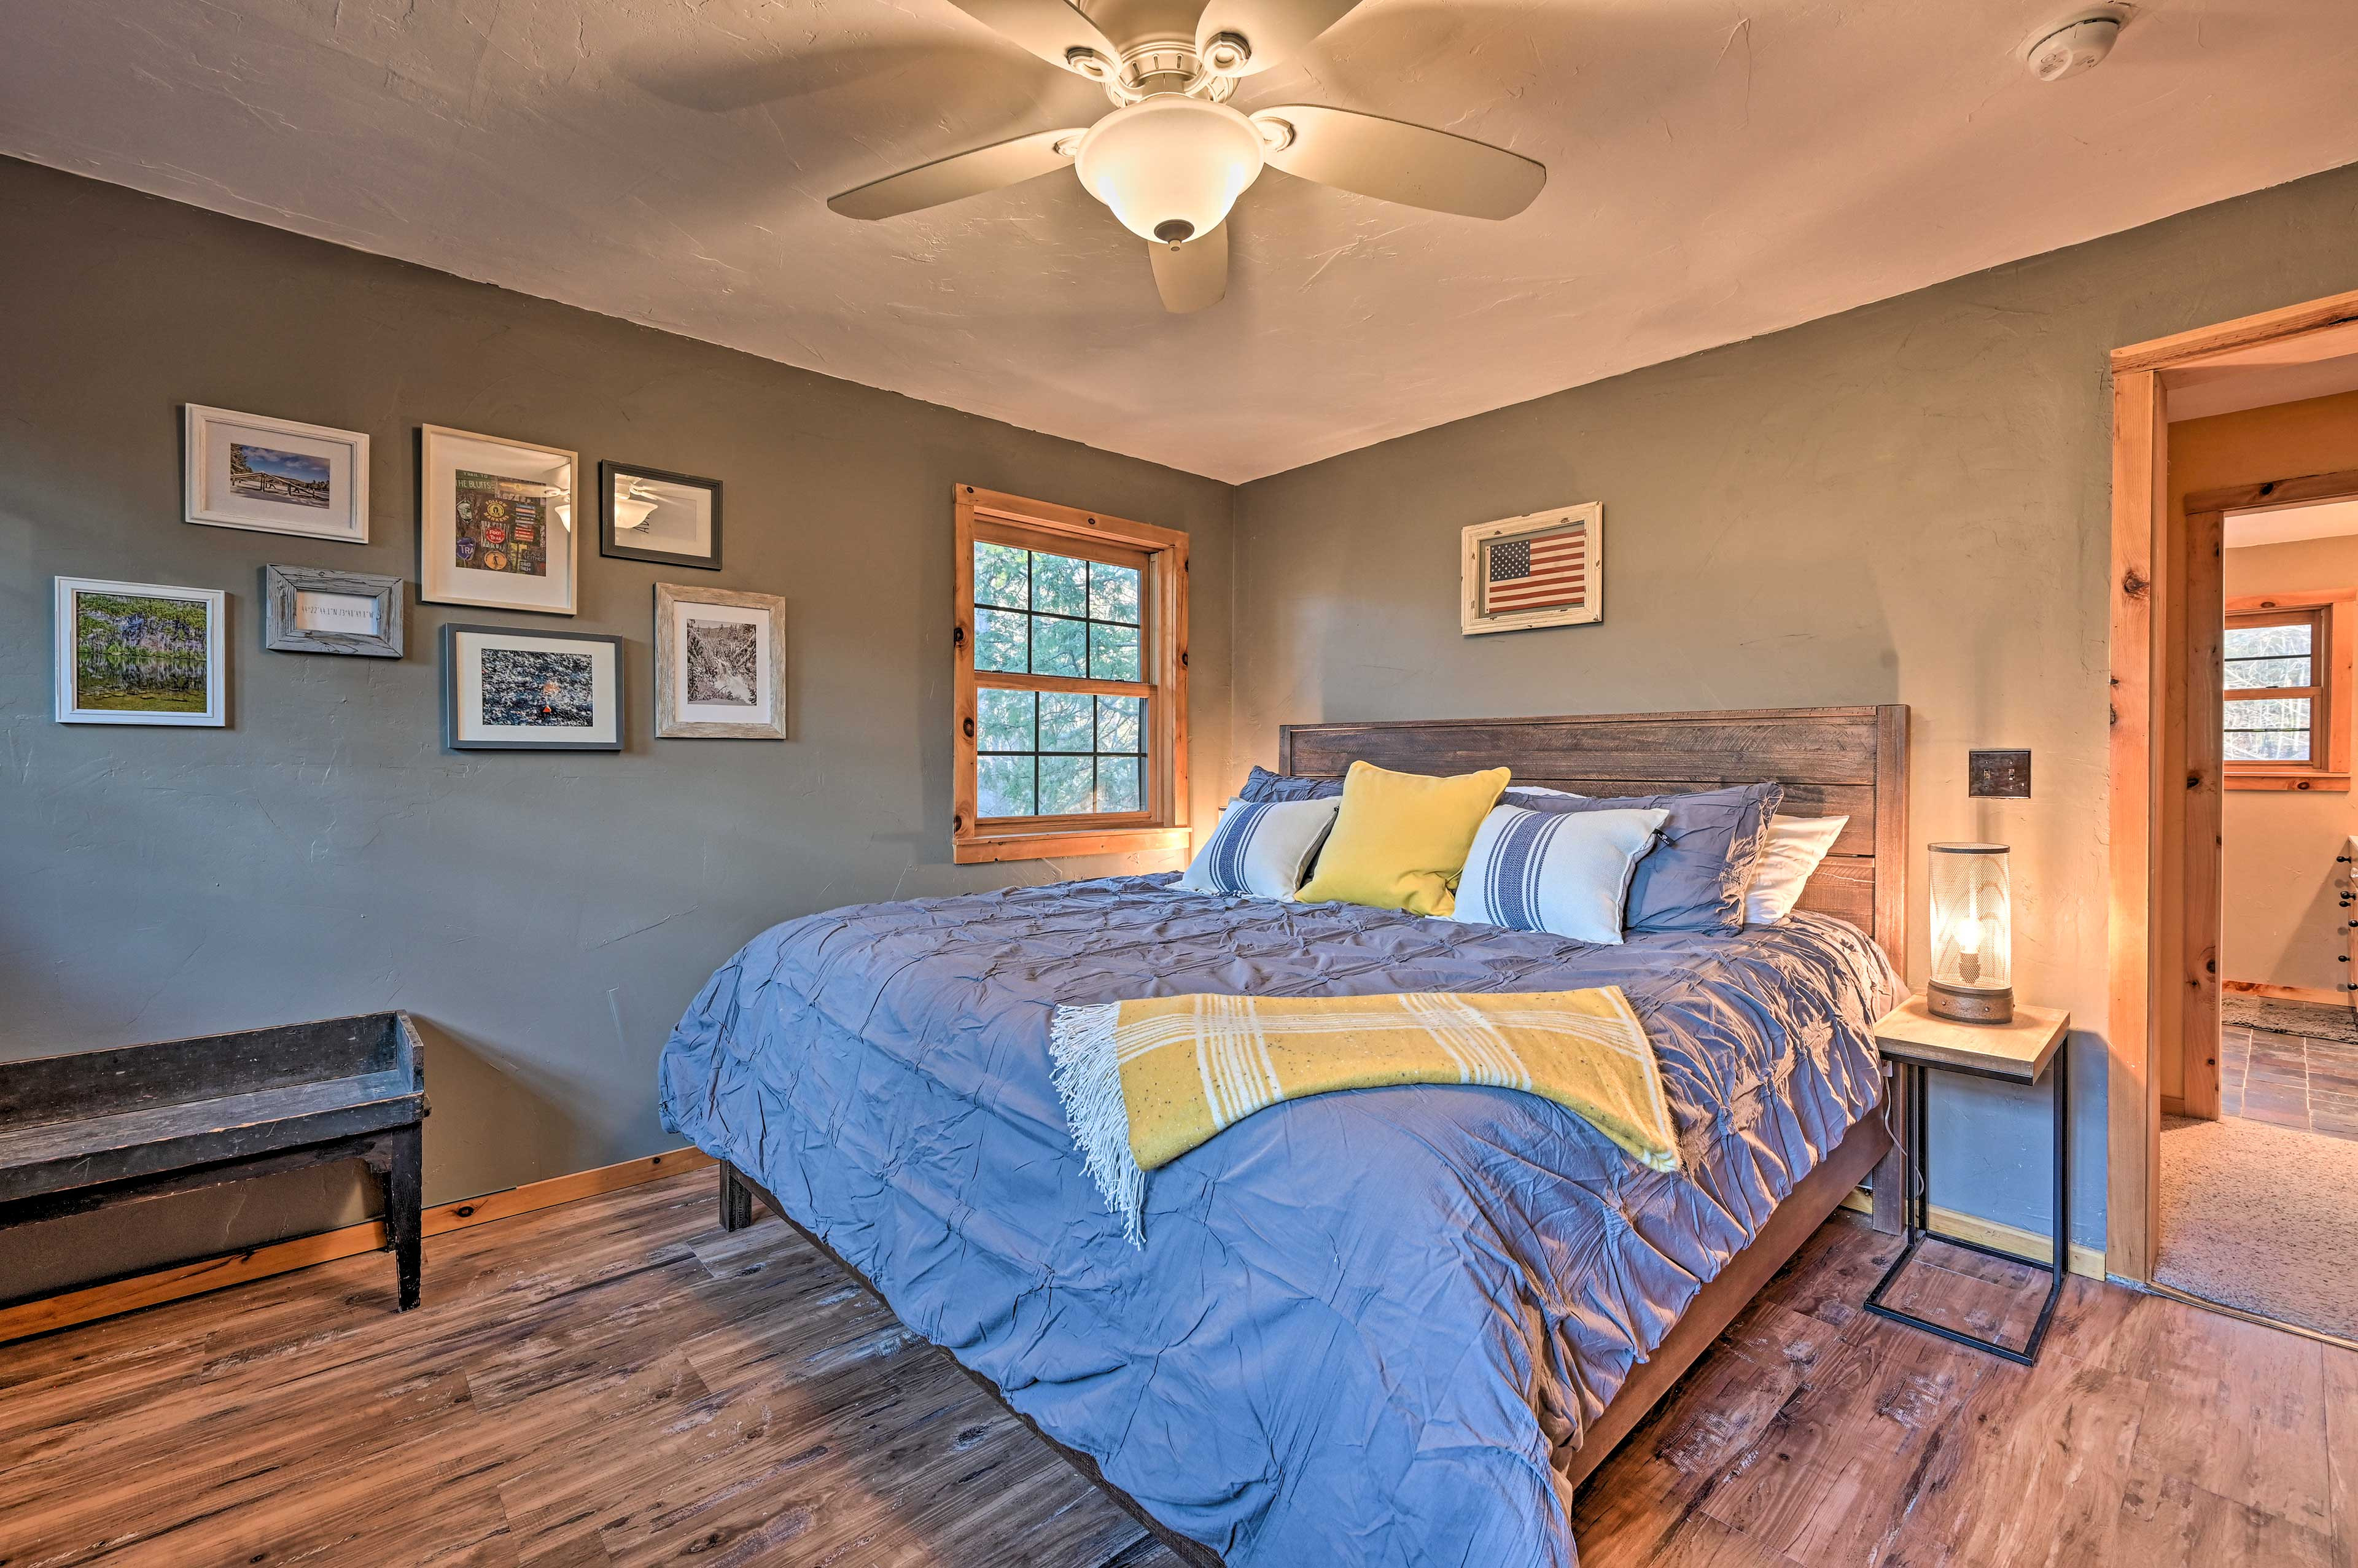 The 4-bedroom, 2-bathroom vacation rental is brimming with character.